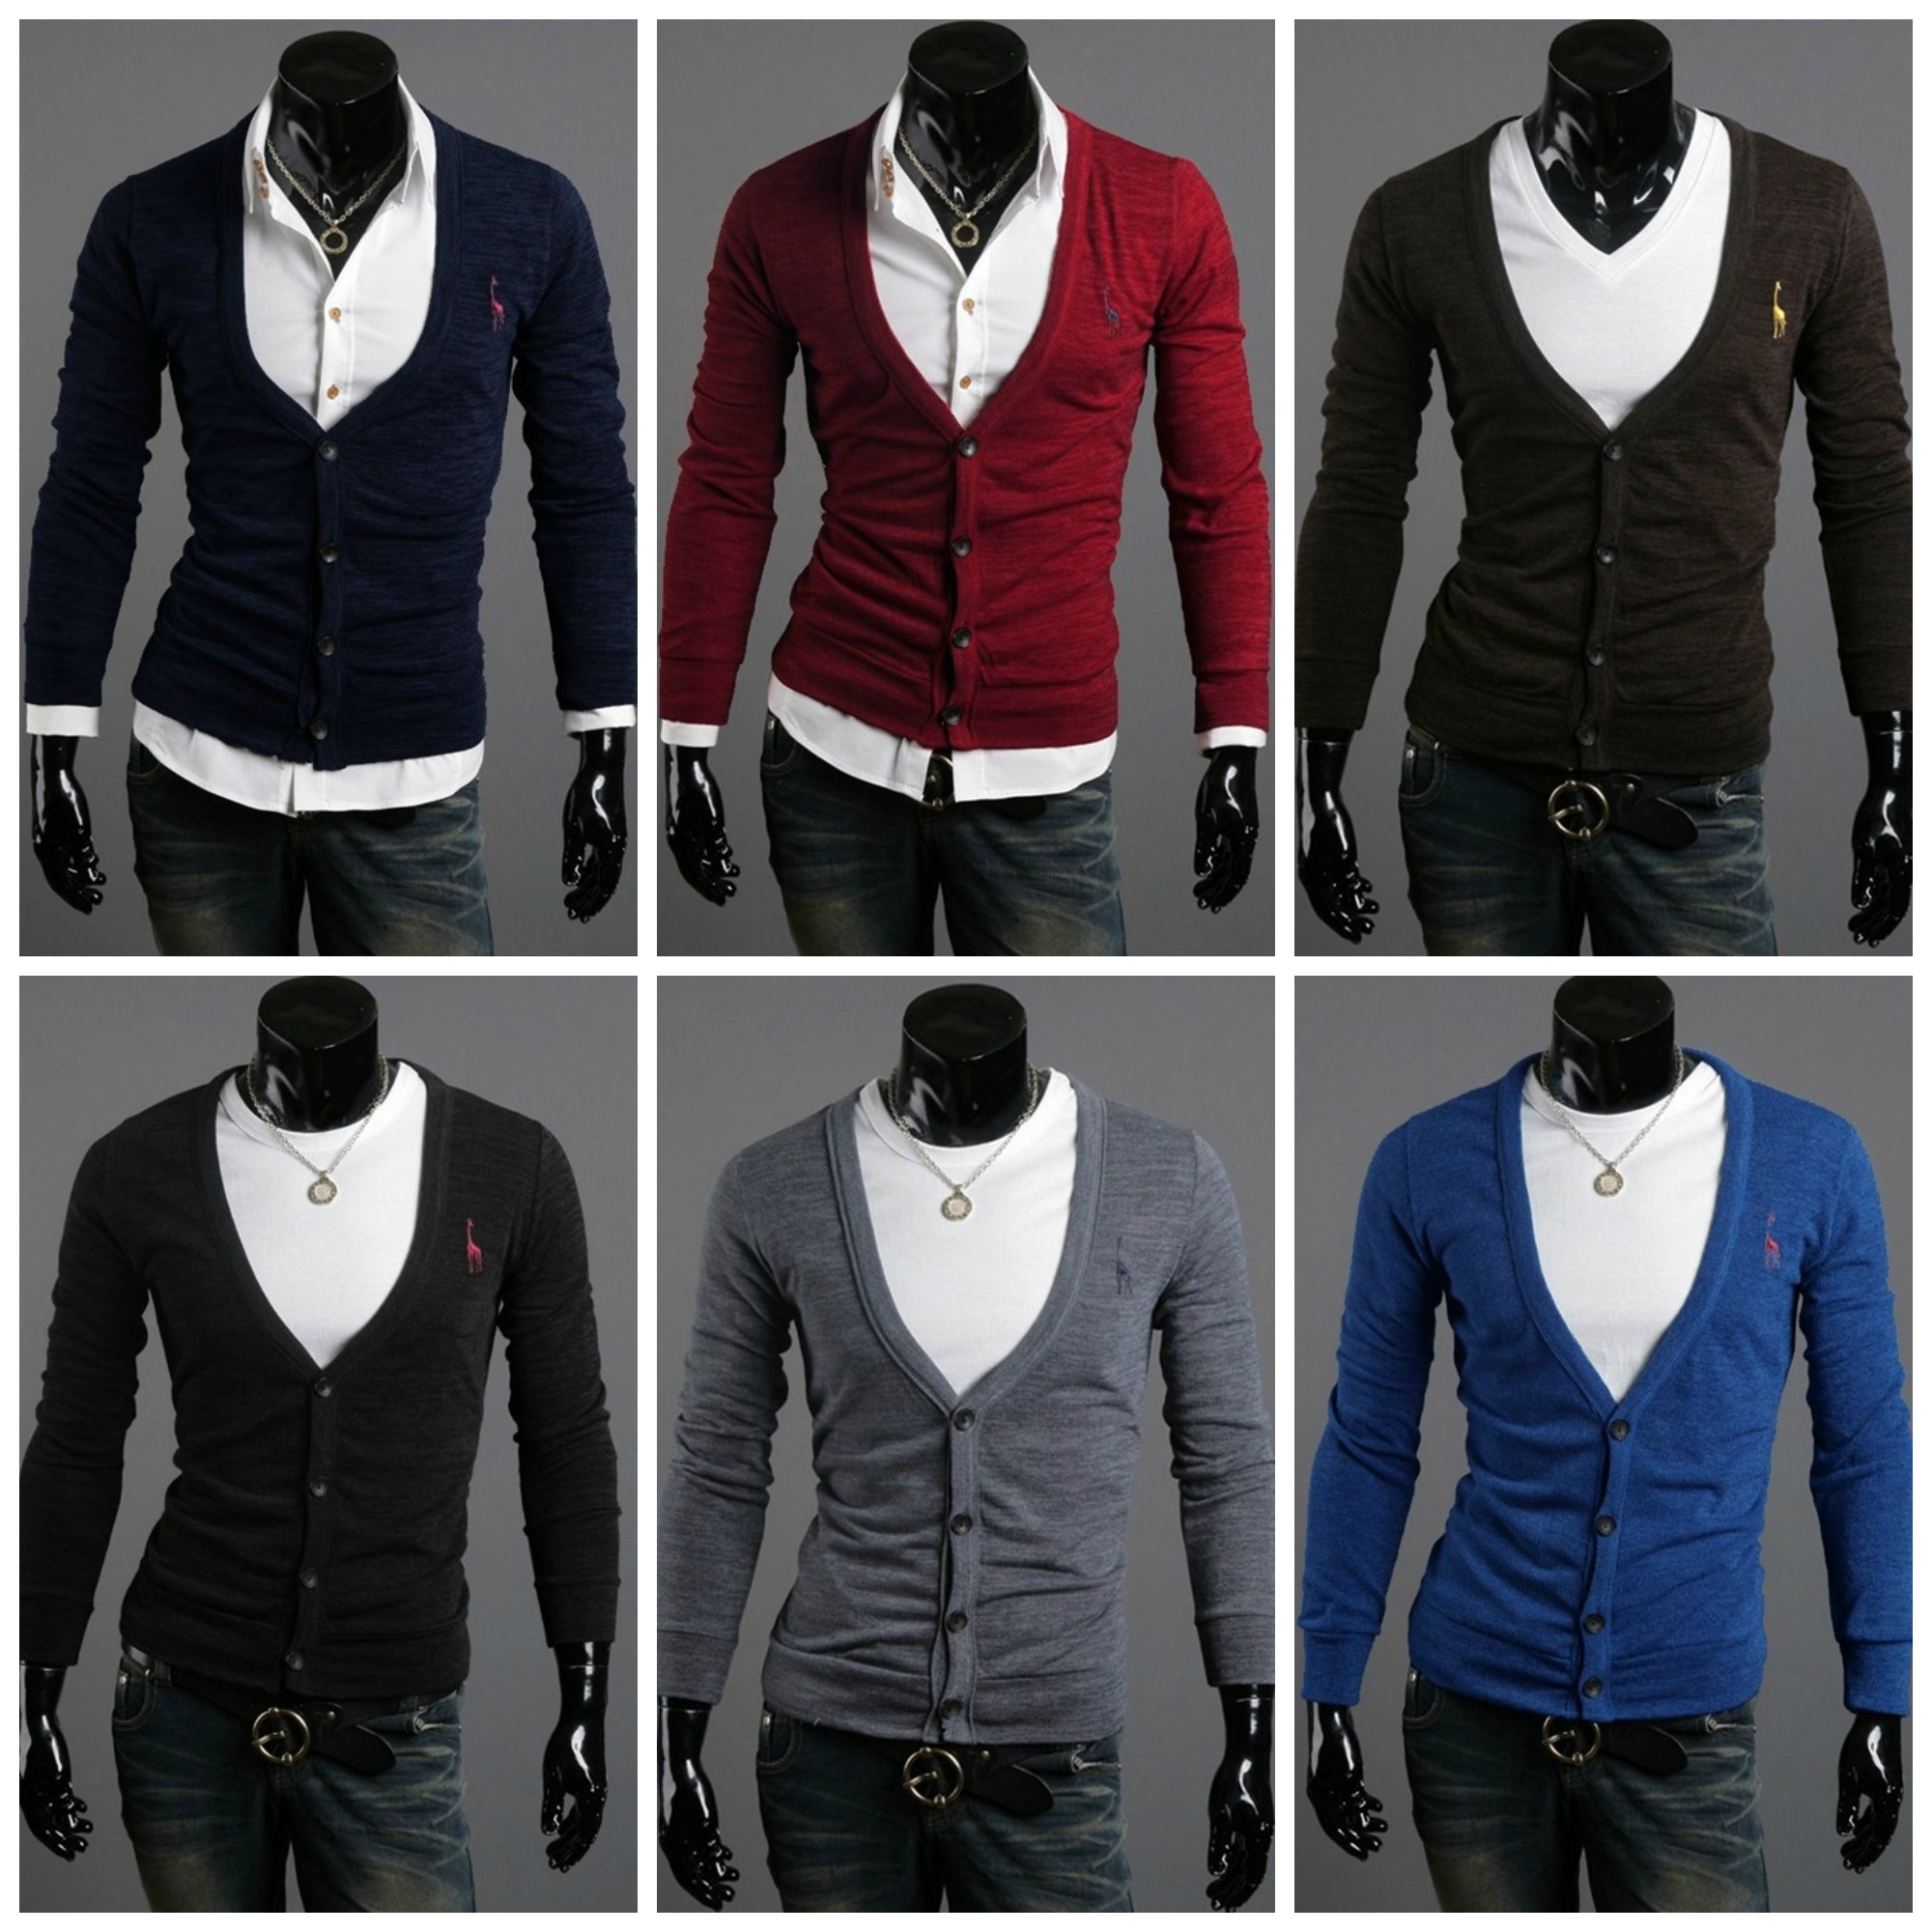 Cardigan Fashion con Cuello en V Profundo